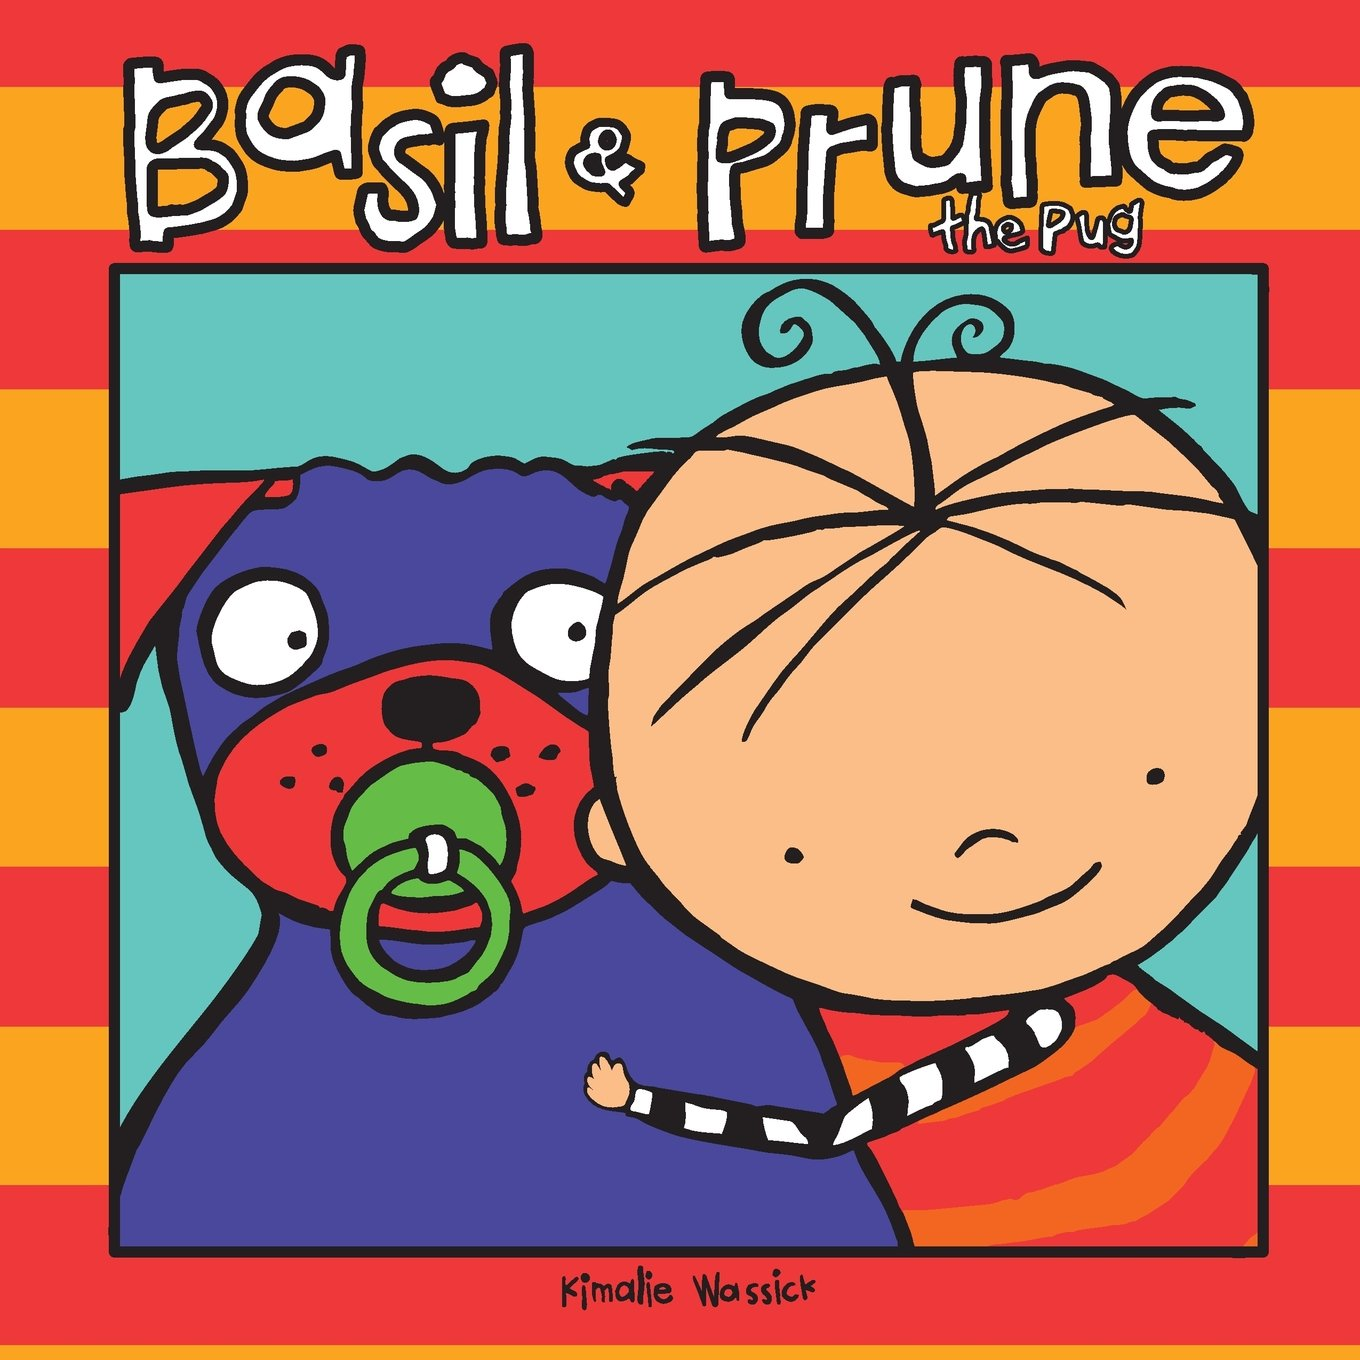 Download Basil and Prune the Pug (The Adventures of Basil and Prune the Pug) (Volume 1) PDF